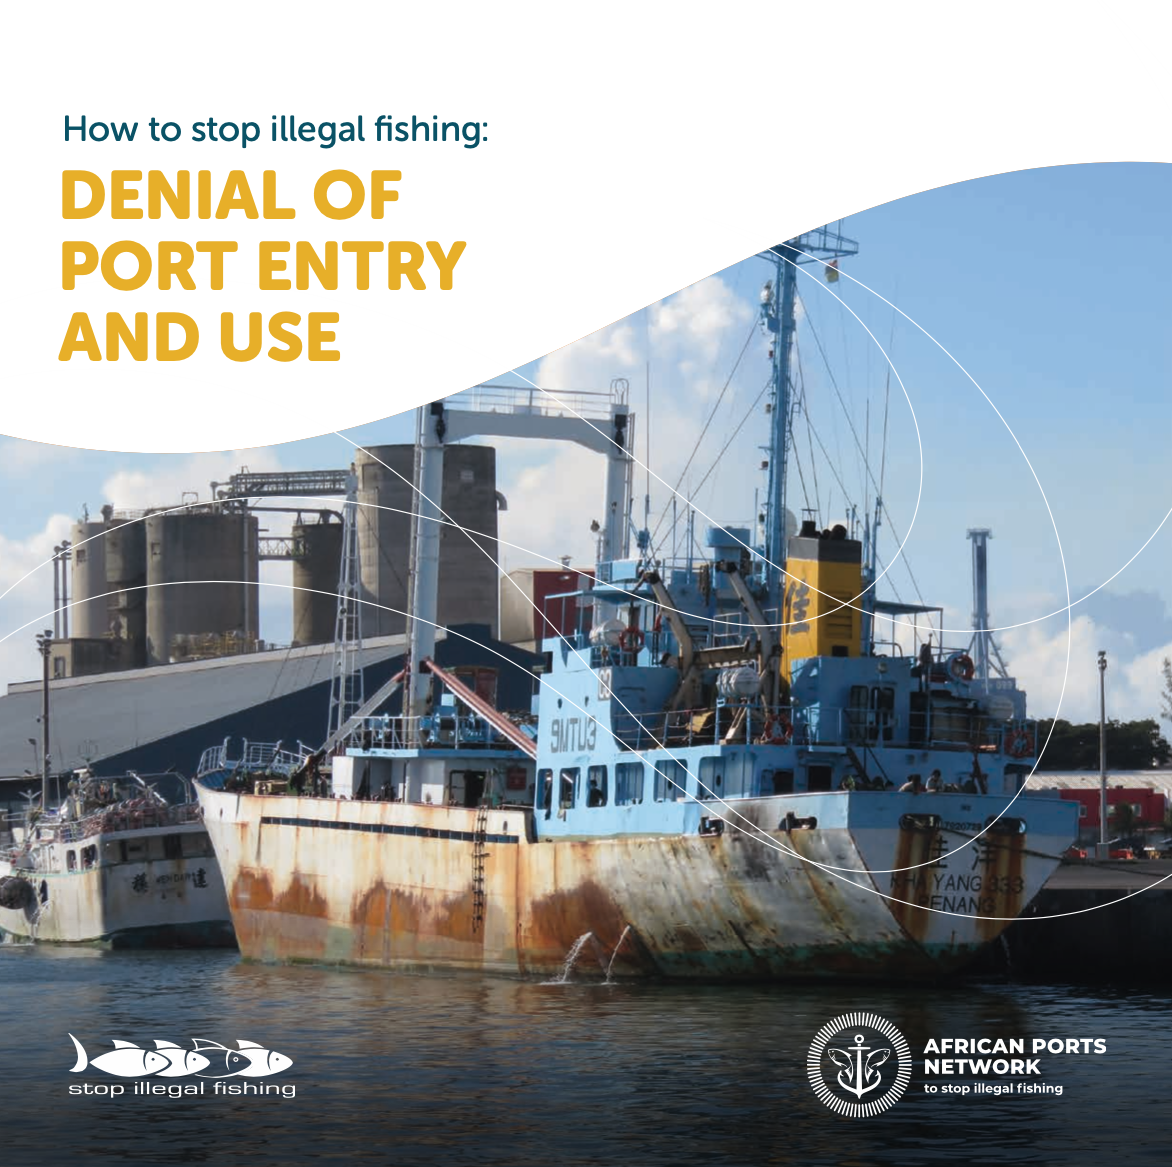 How to Stop Illegal Fishing: Denial of Port Entry and Use